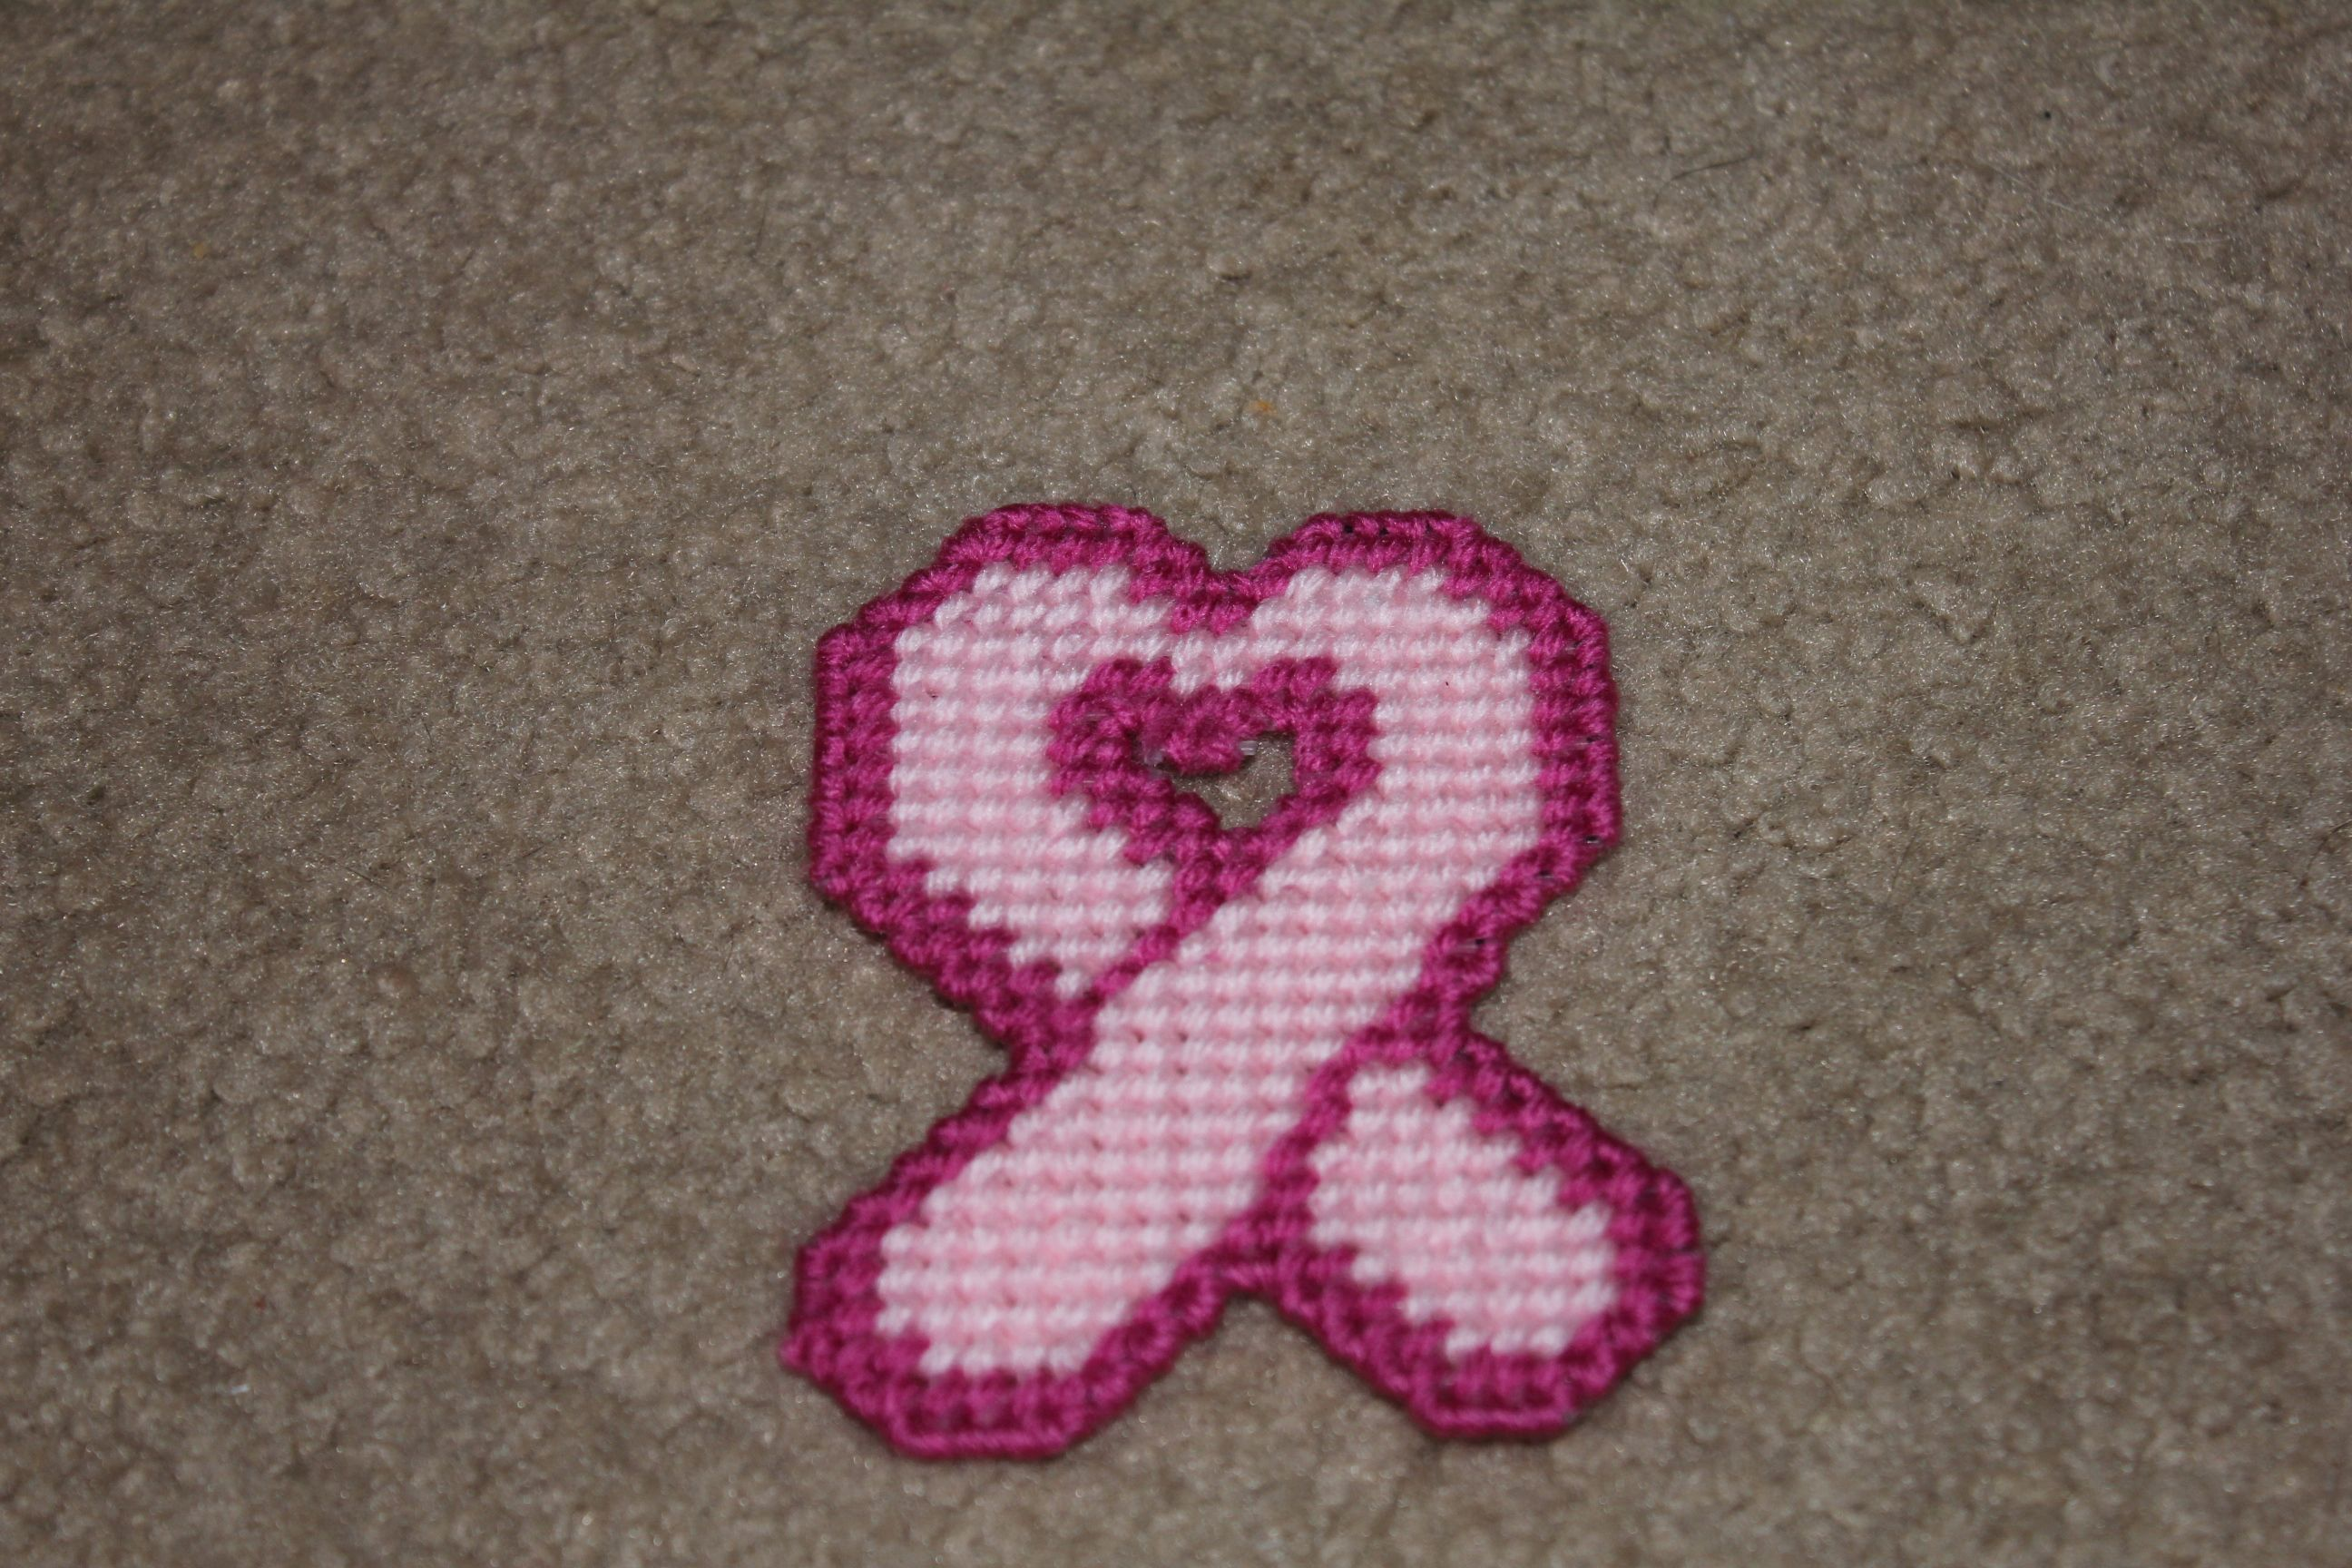 breast cancer plastic canvas